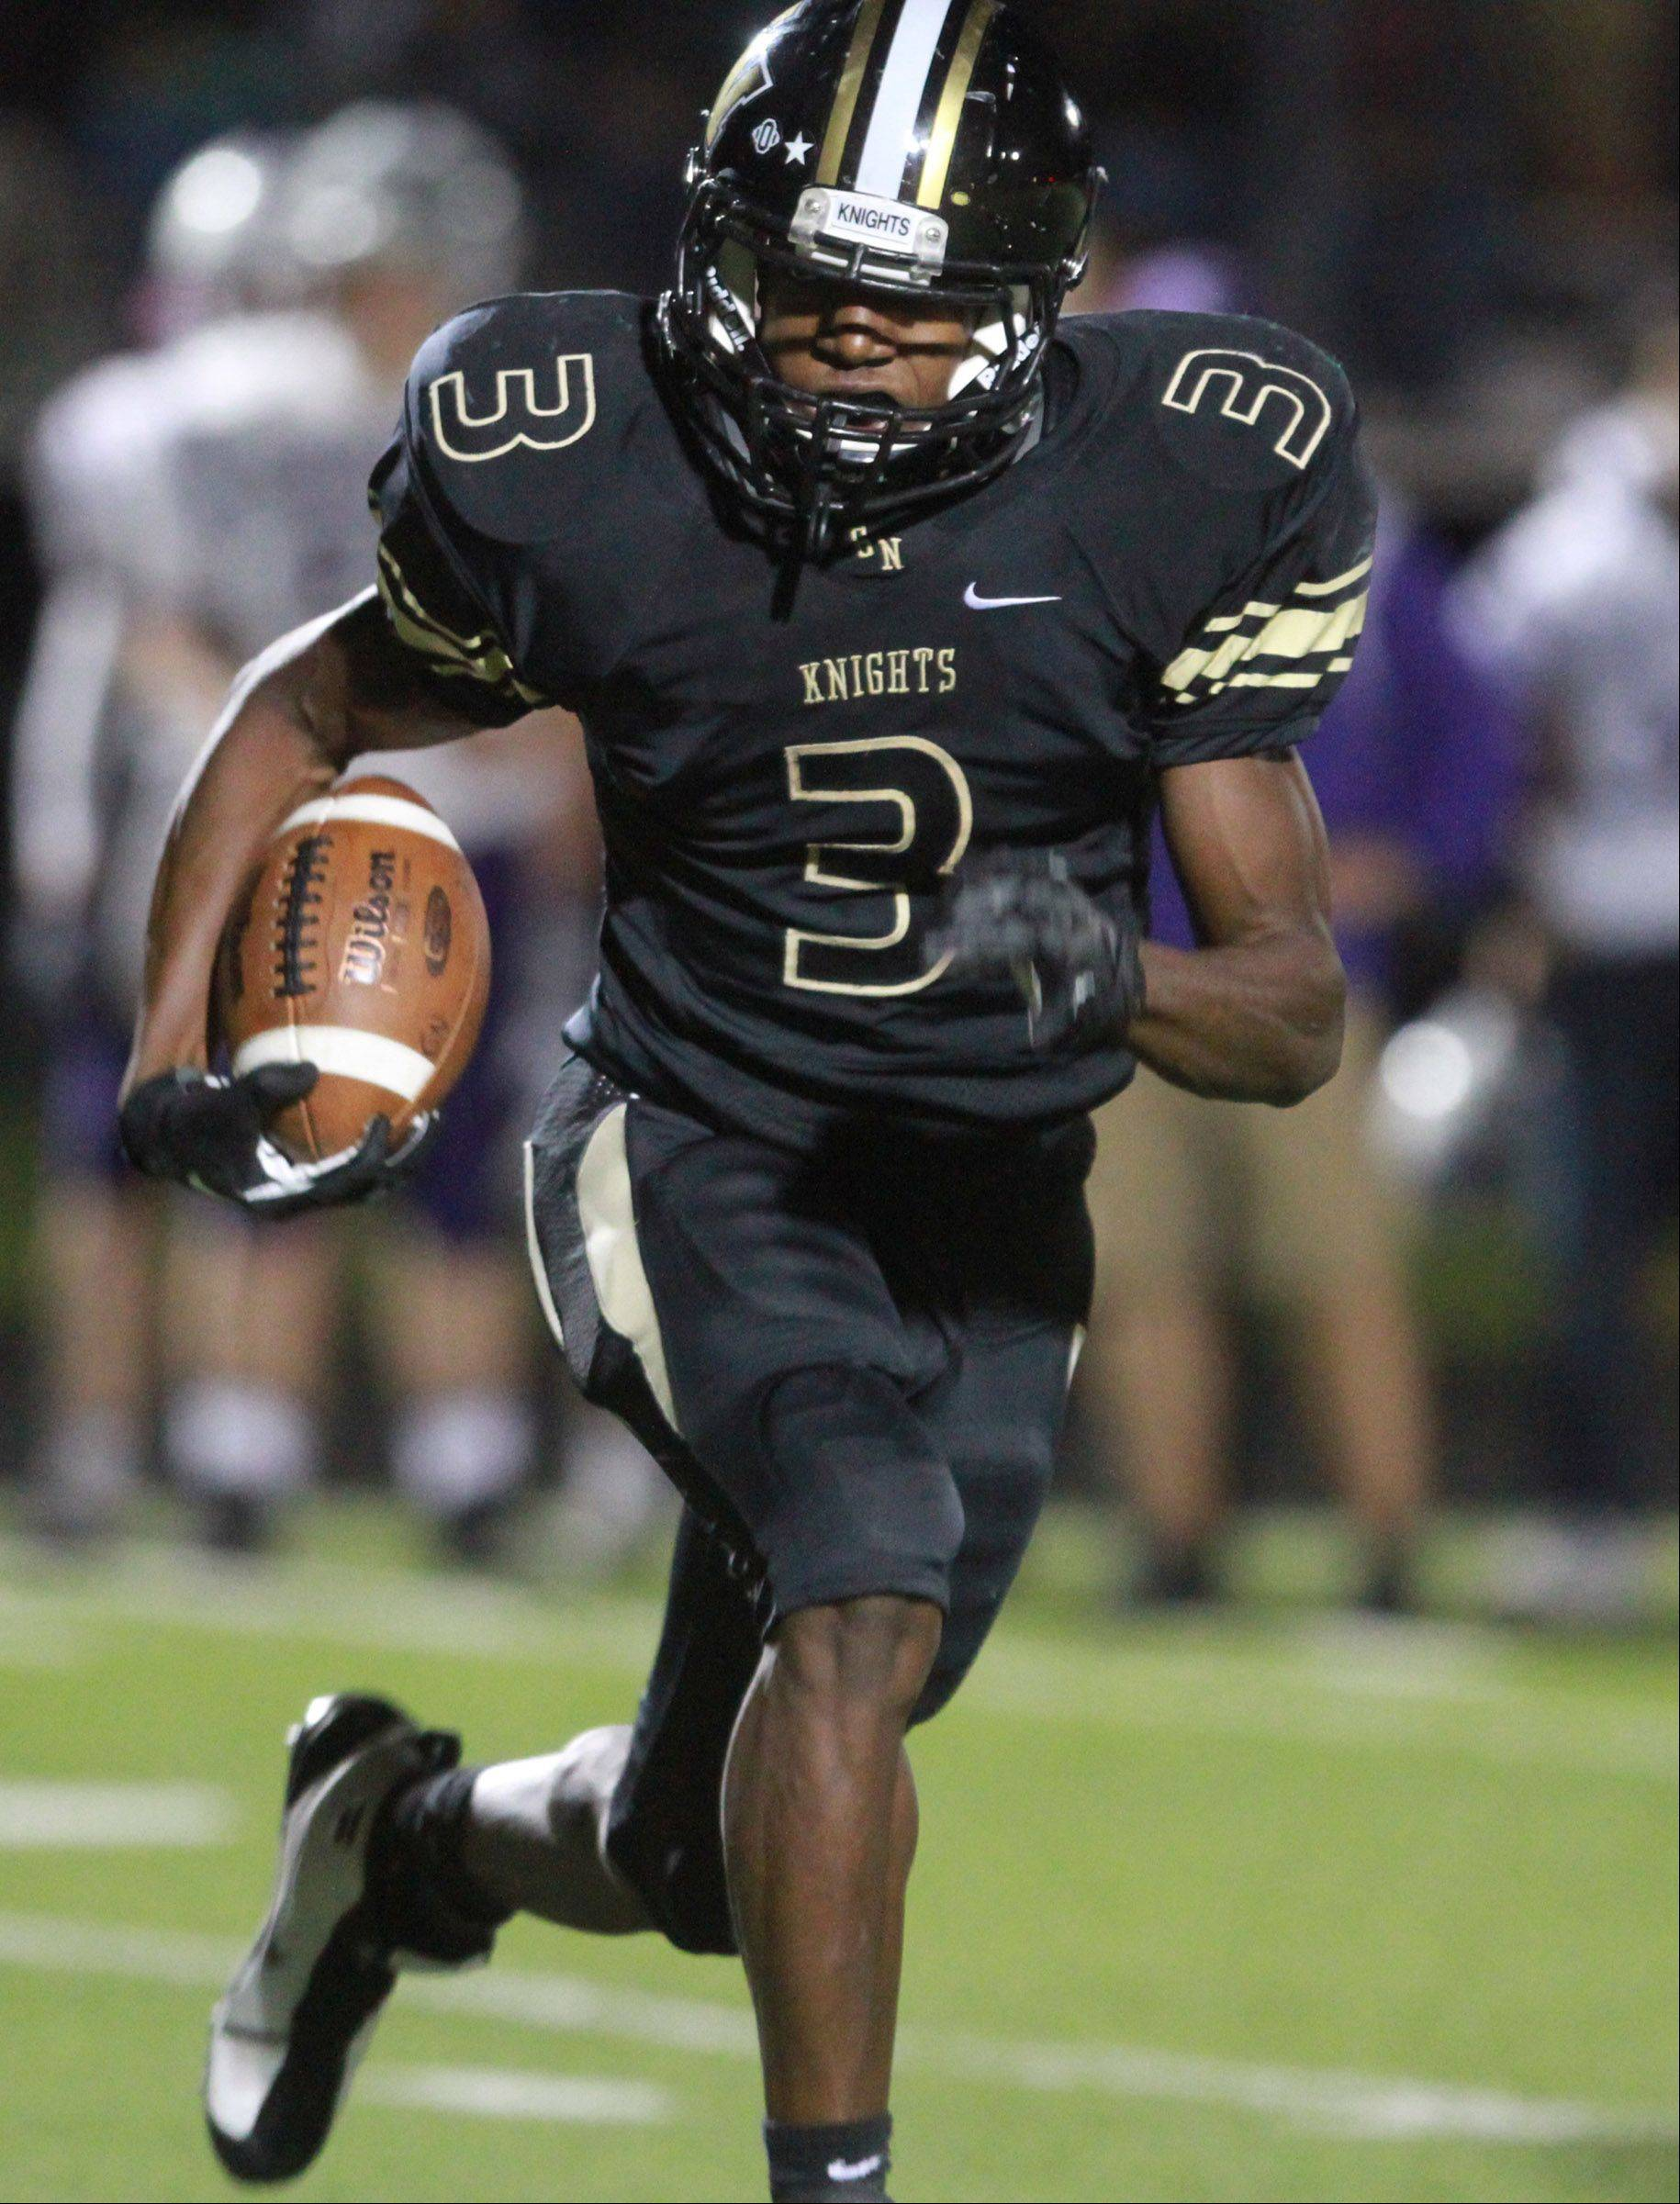 Grayslake North running back Titus Booker moves the ball.